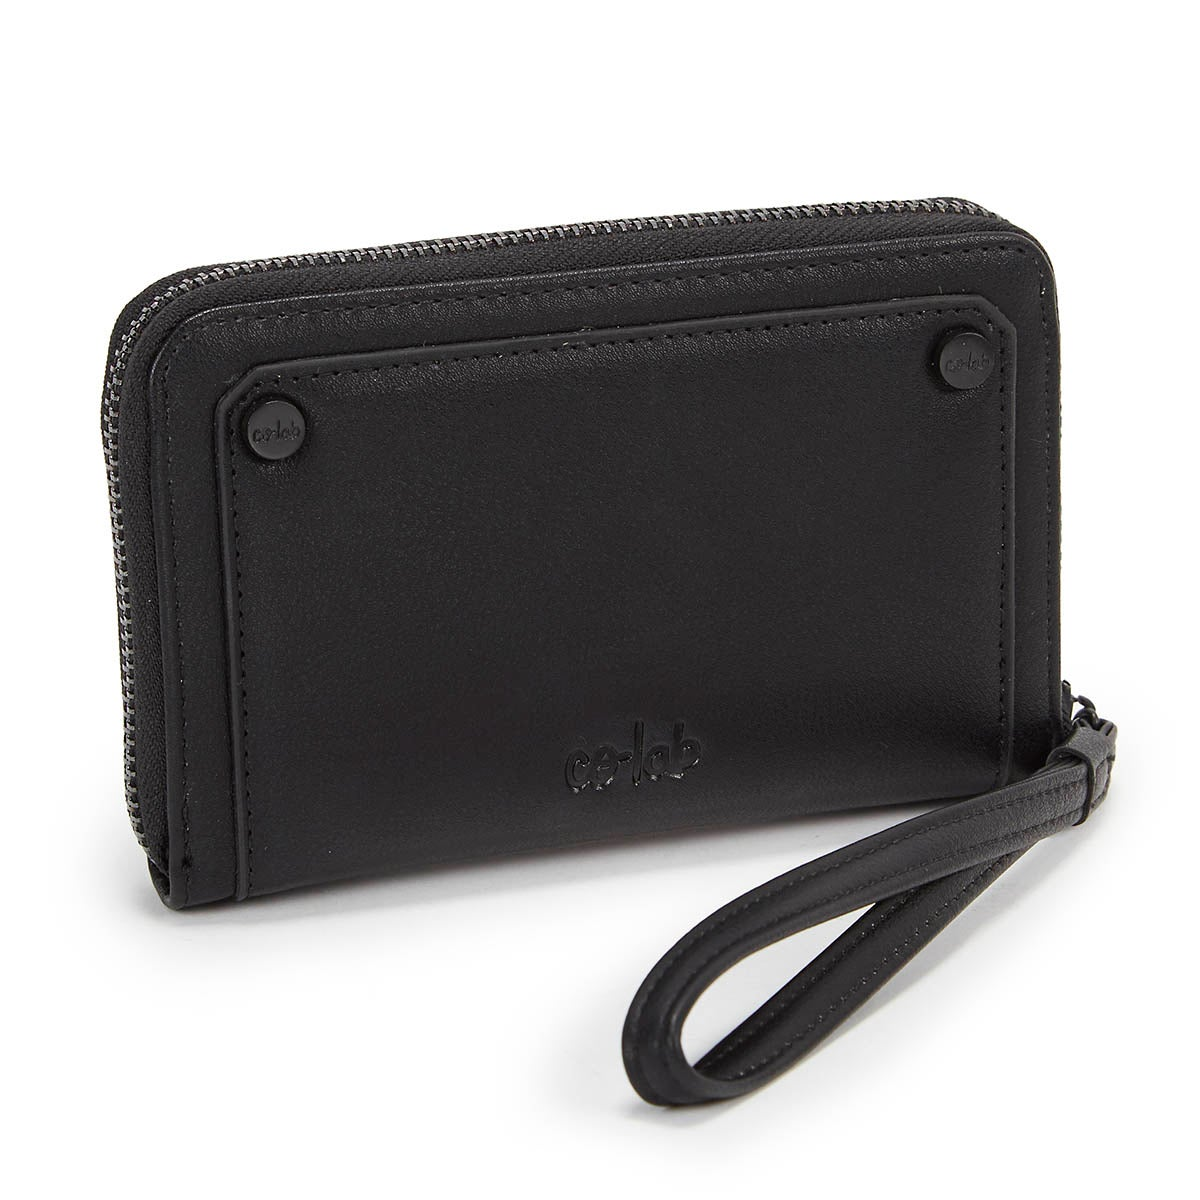 Lds black zip up mini wallet